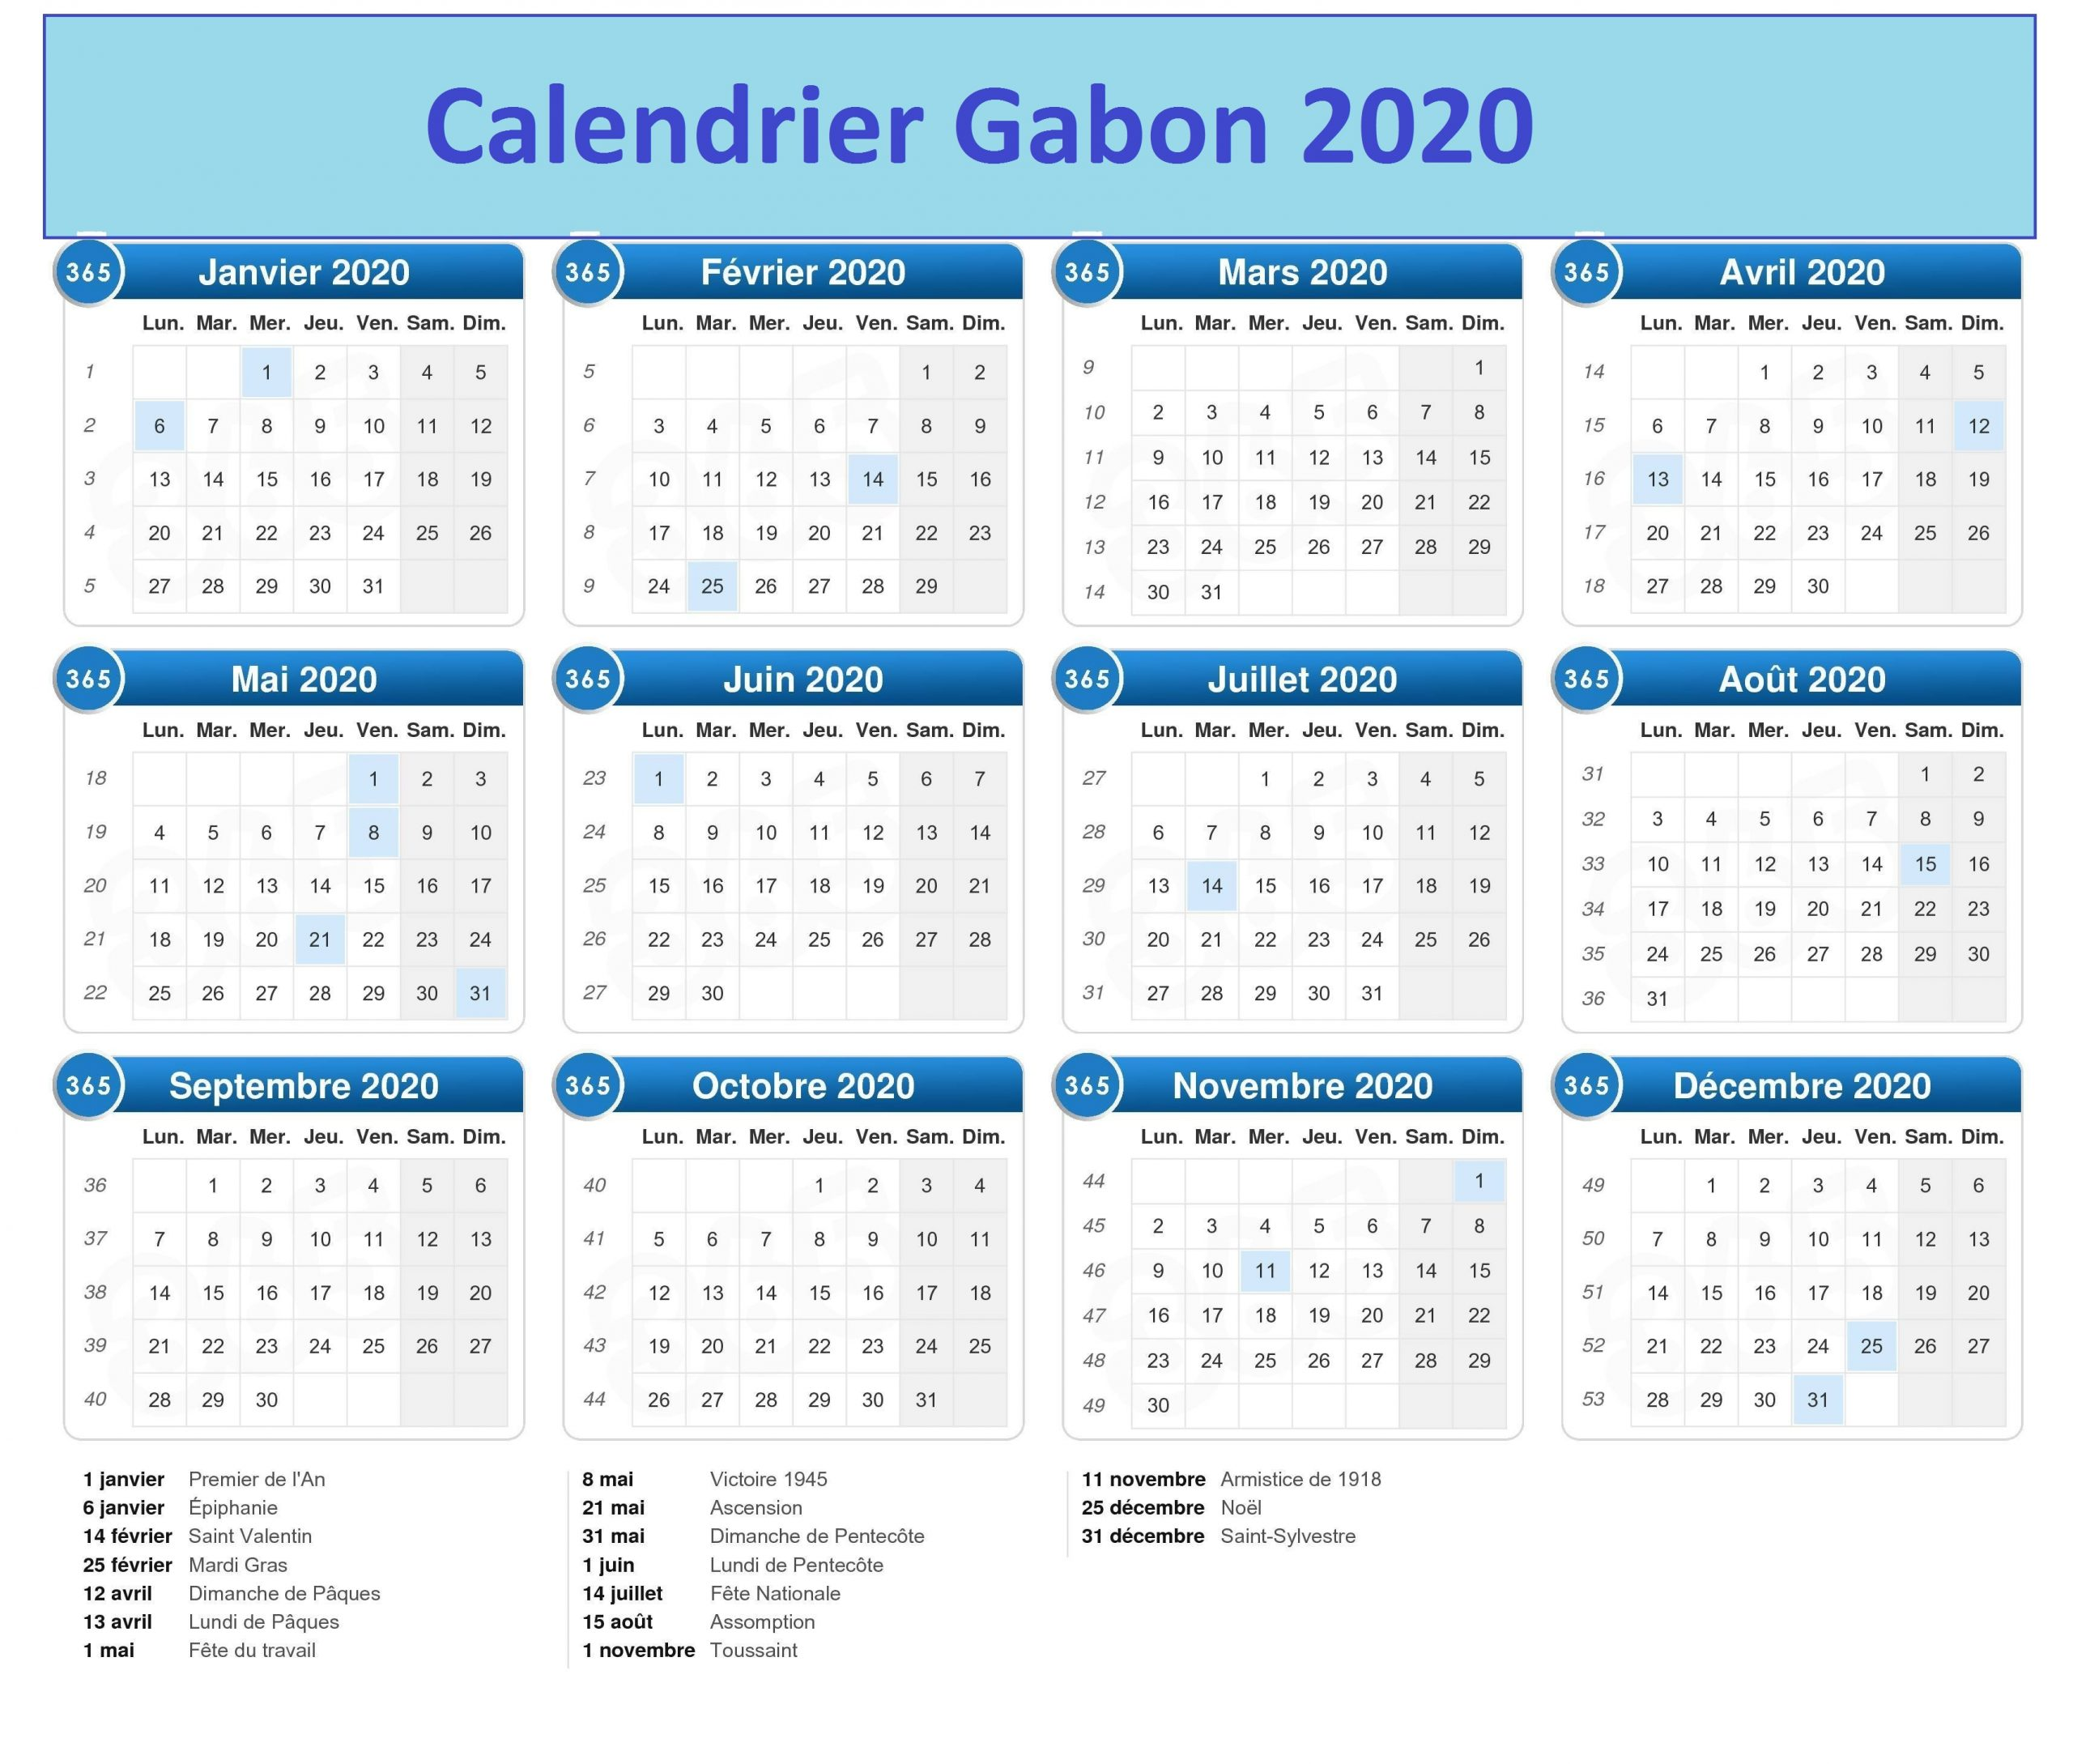 Calendrier Campus France Gabon 2020